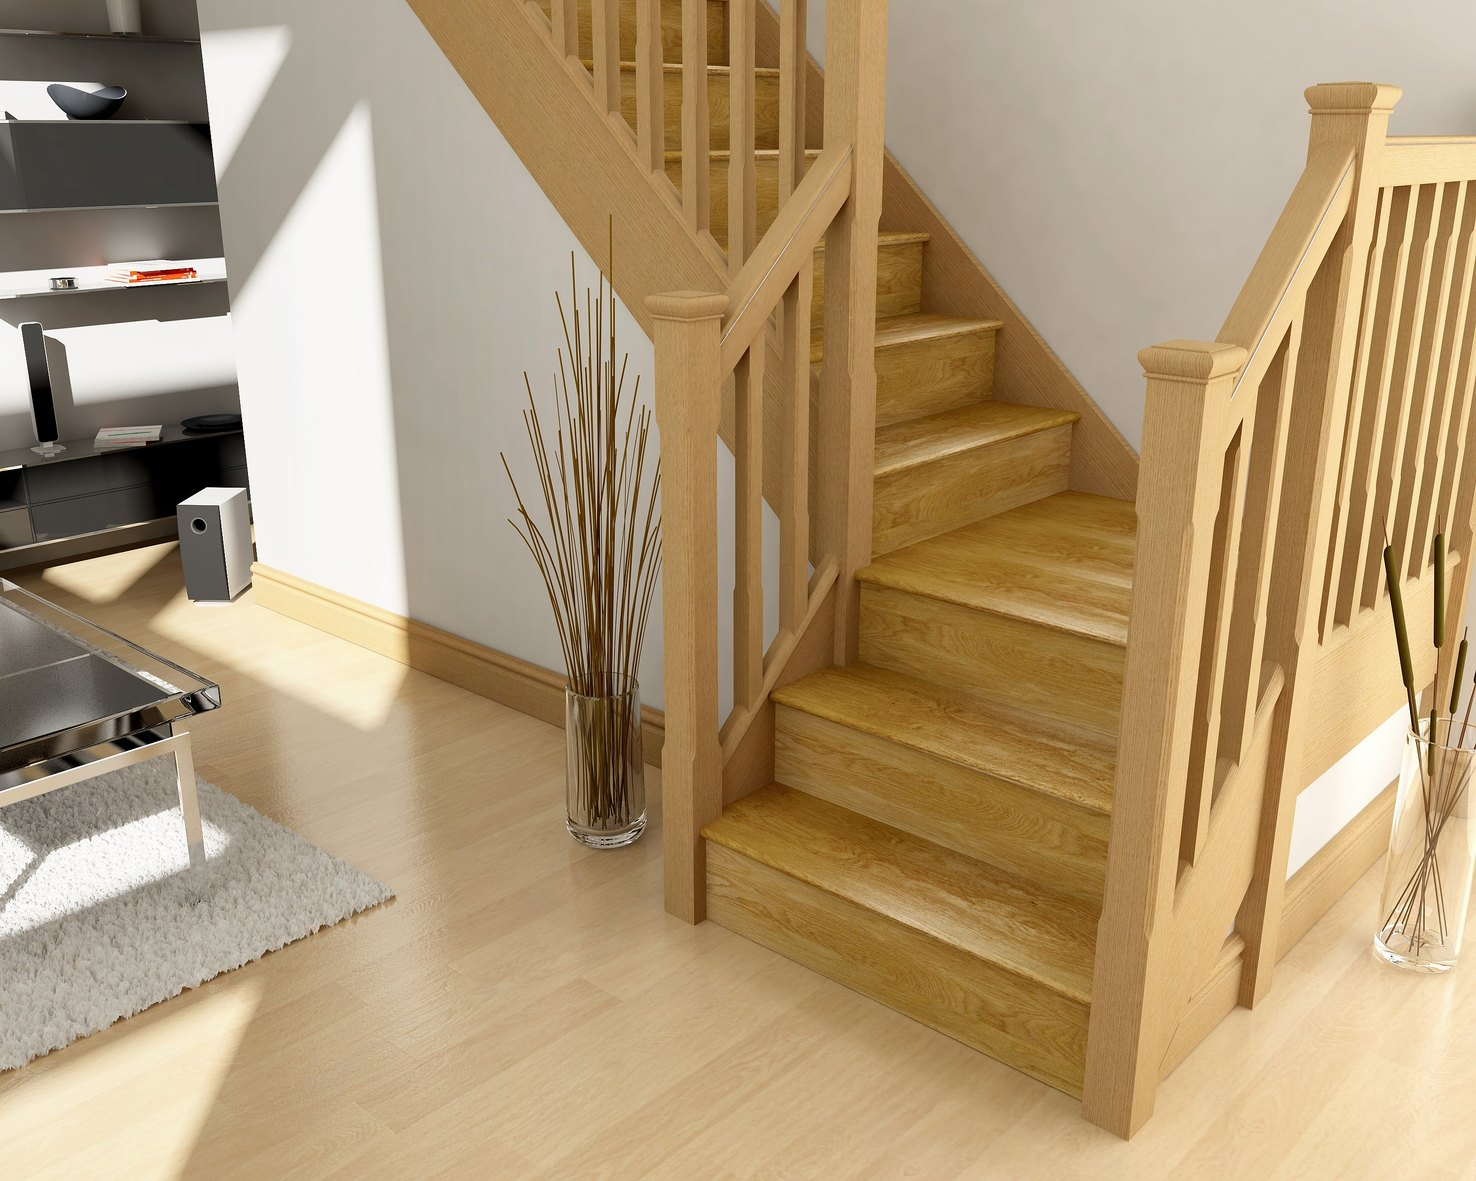 Transform your staircase with KLAD™ Oak Stair Cladding